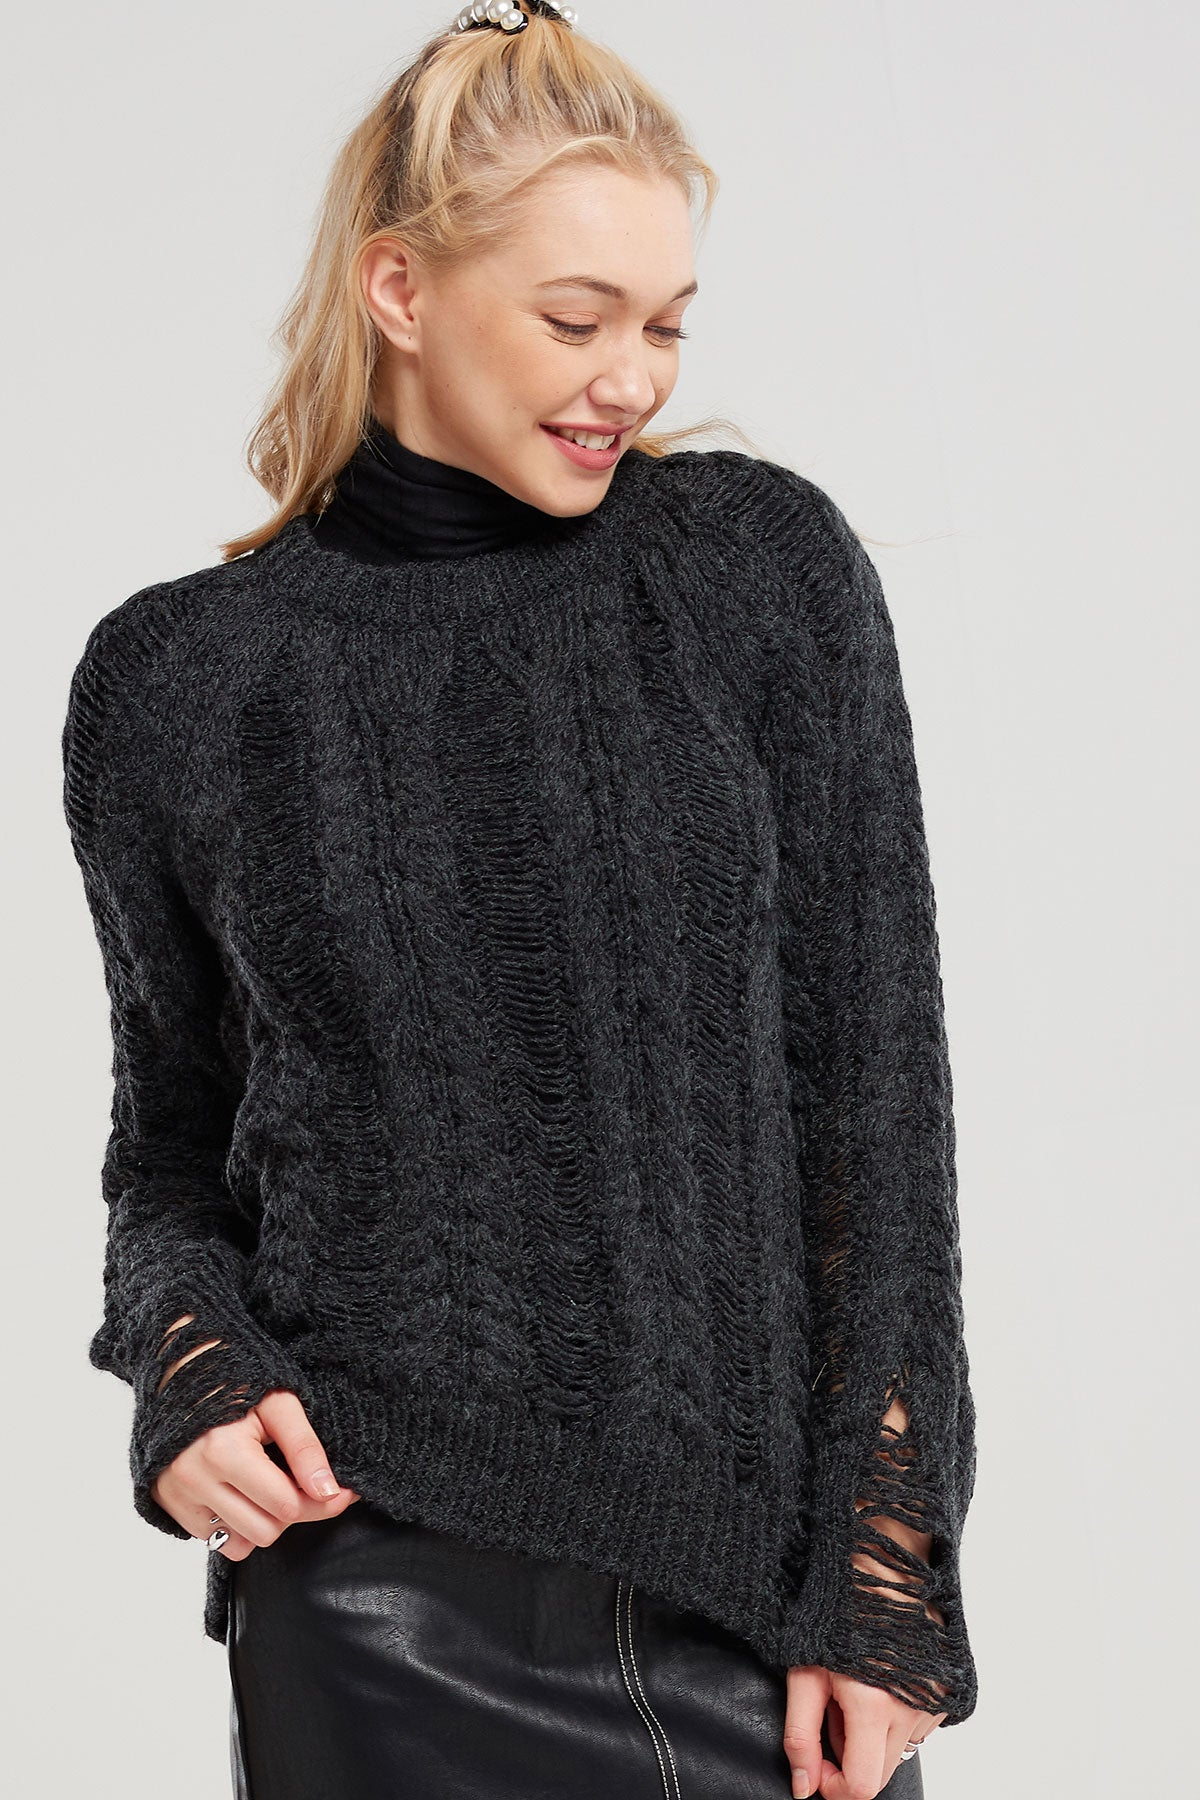 Drew Stretched Knit Sweater-2 Colors